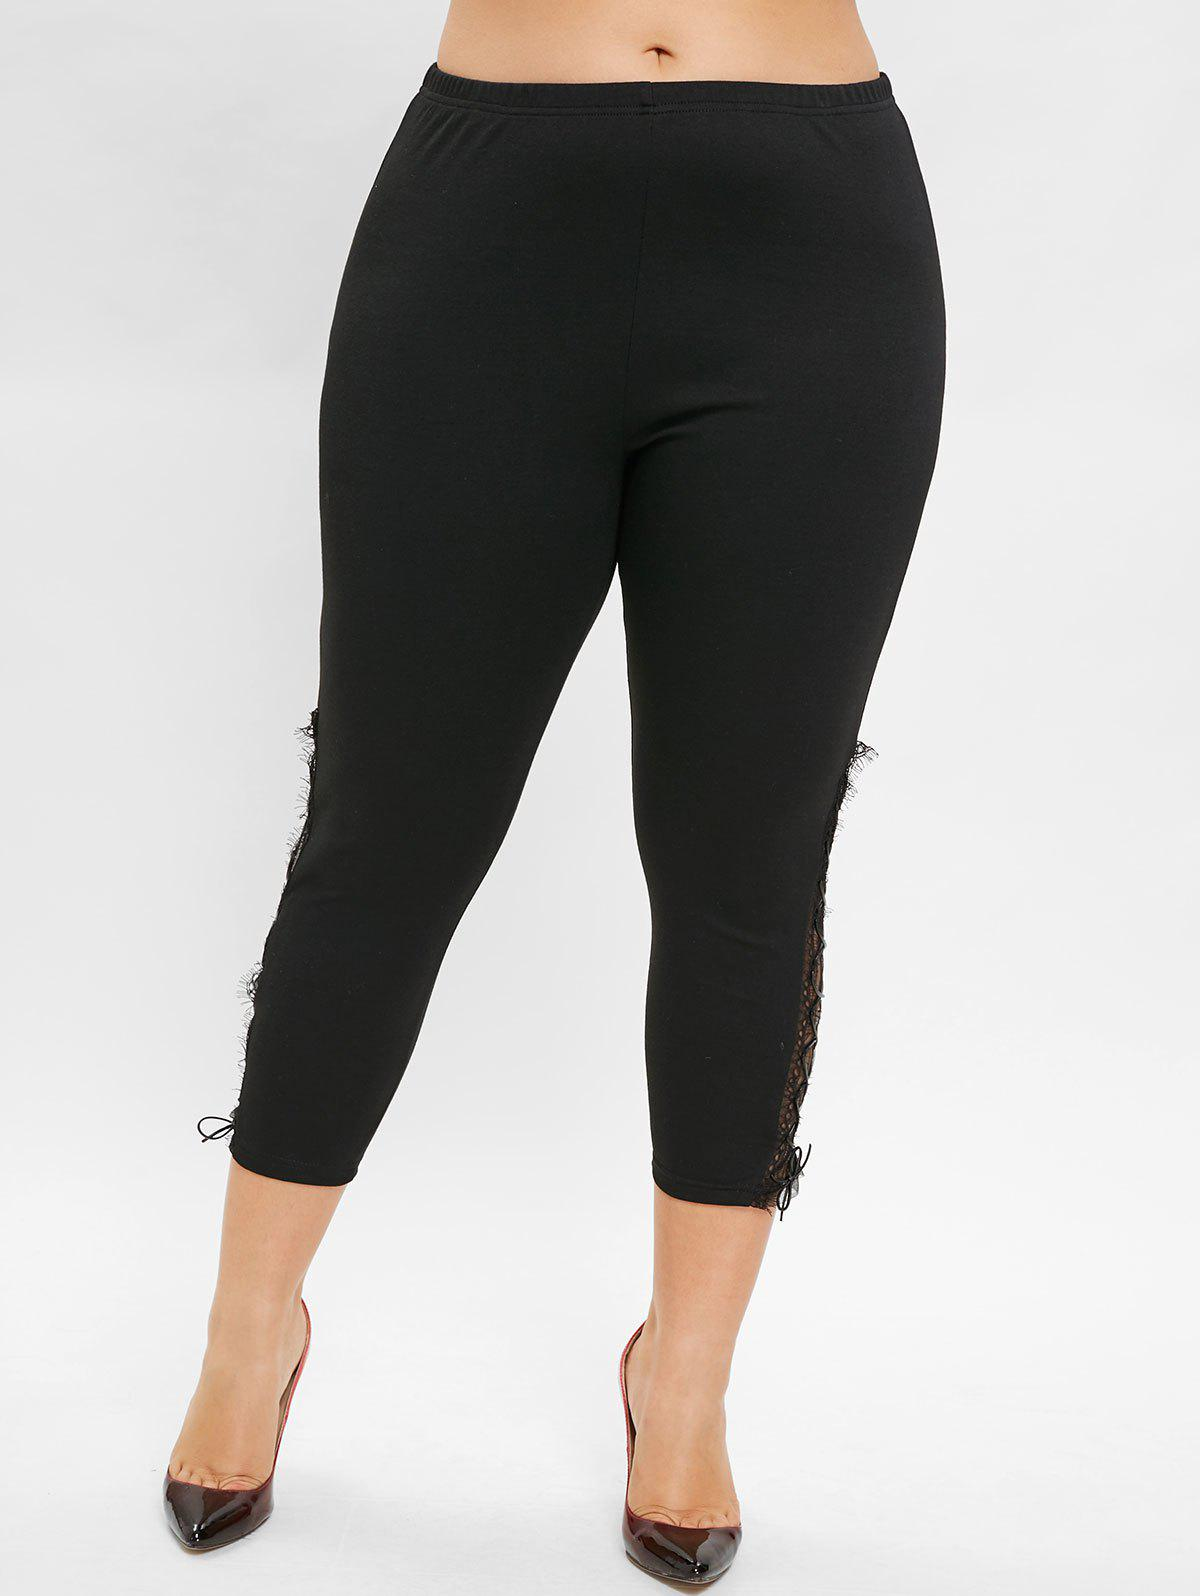 Buy Plus Size Lace Insert Ninth Leggings